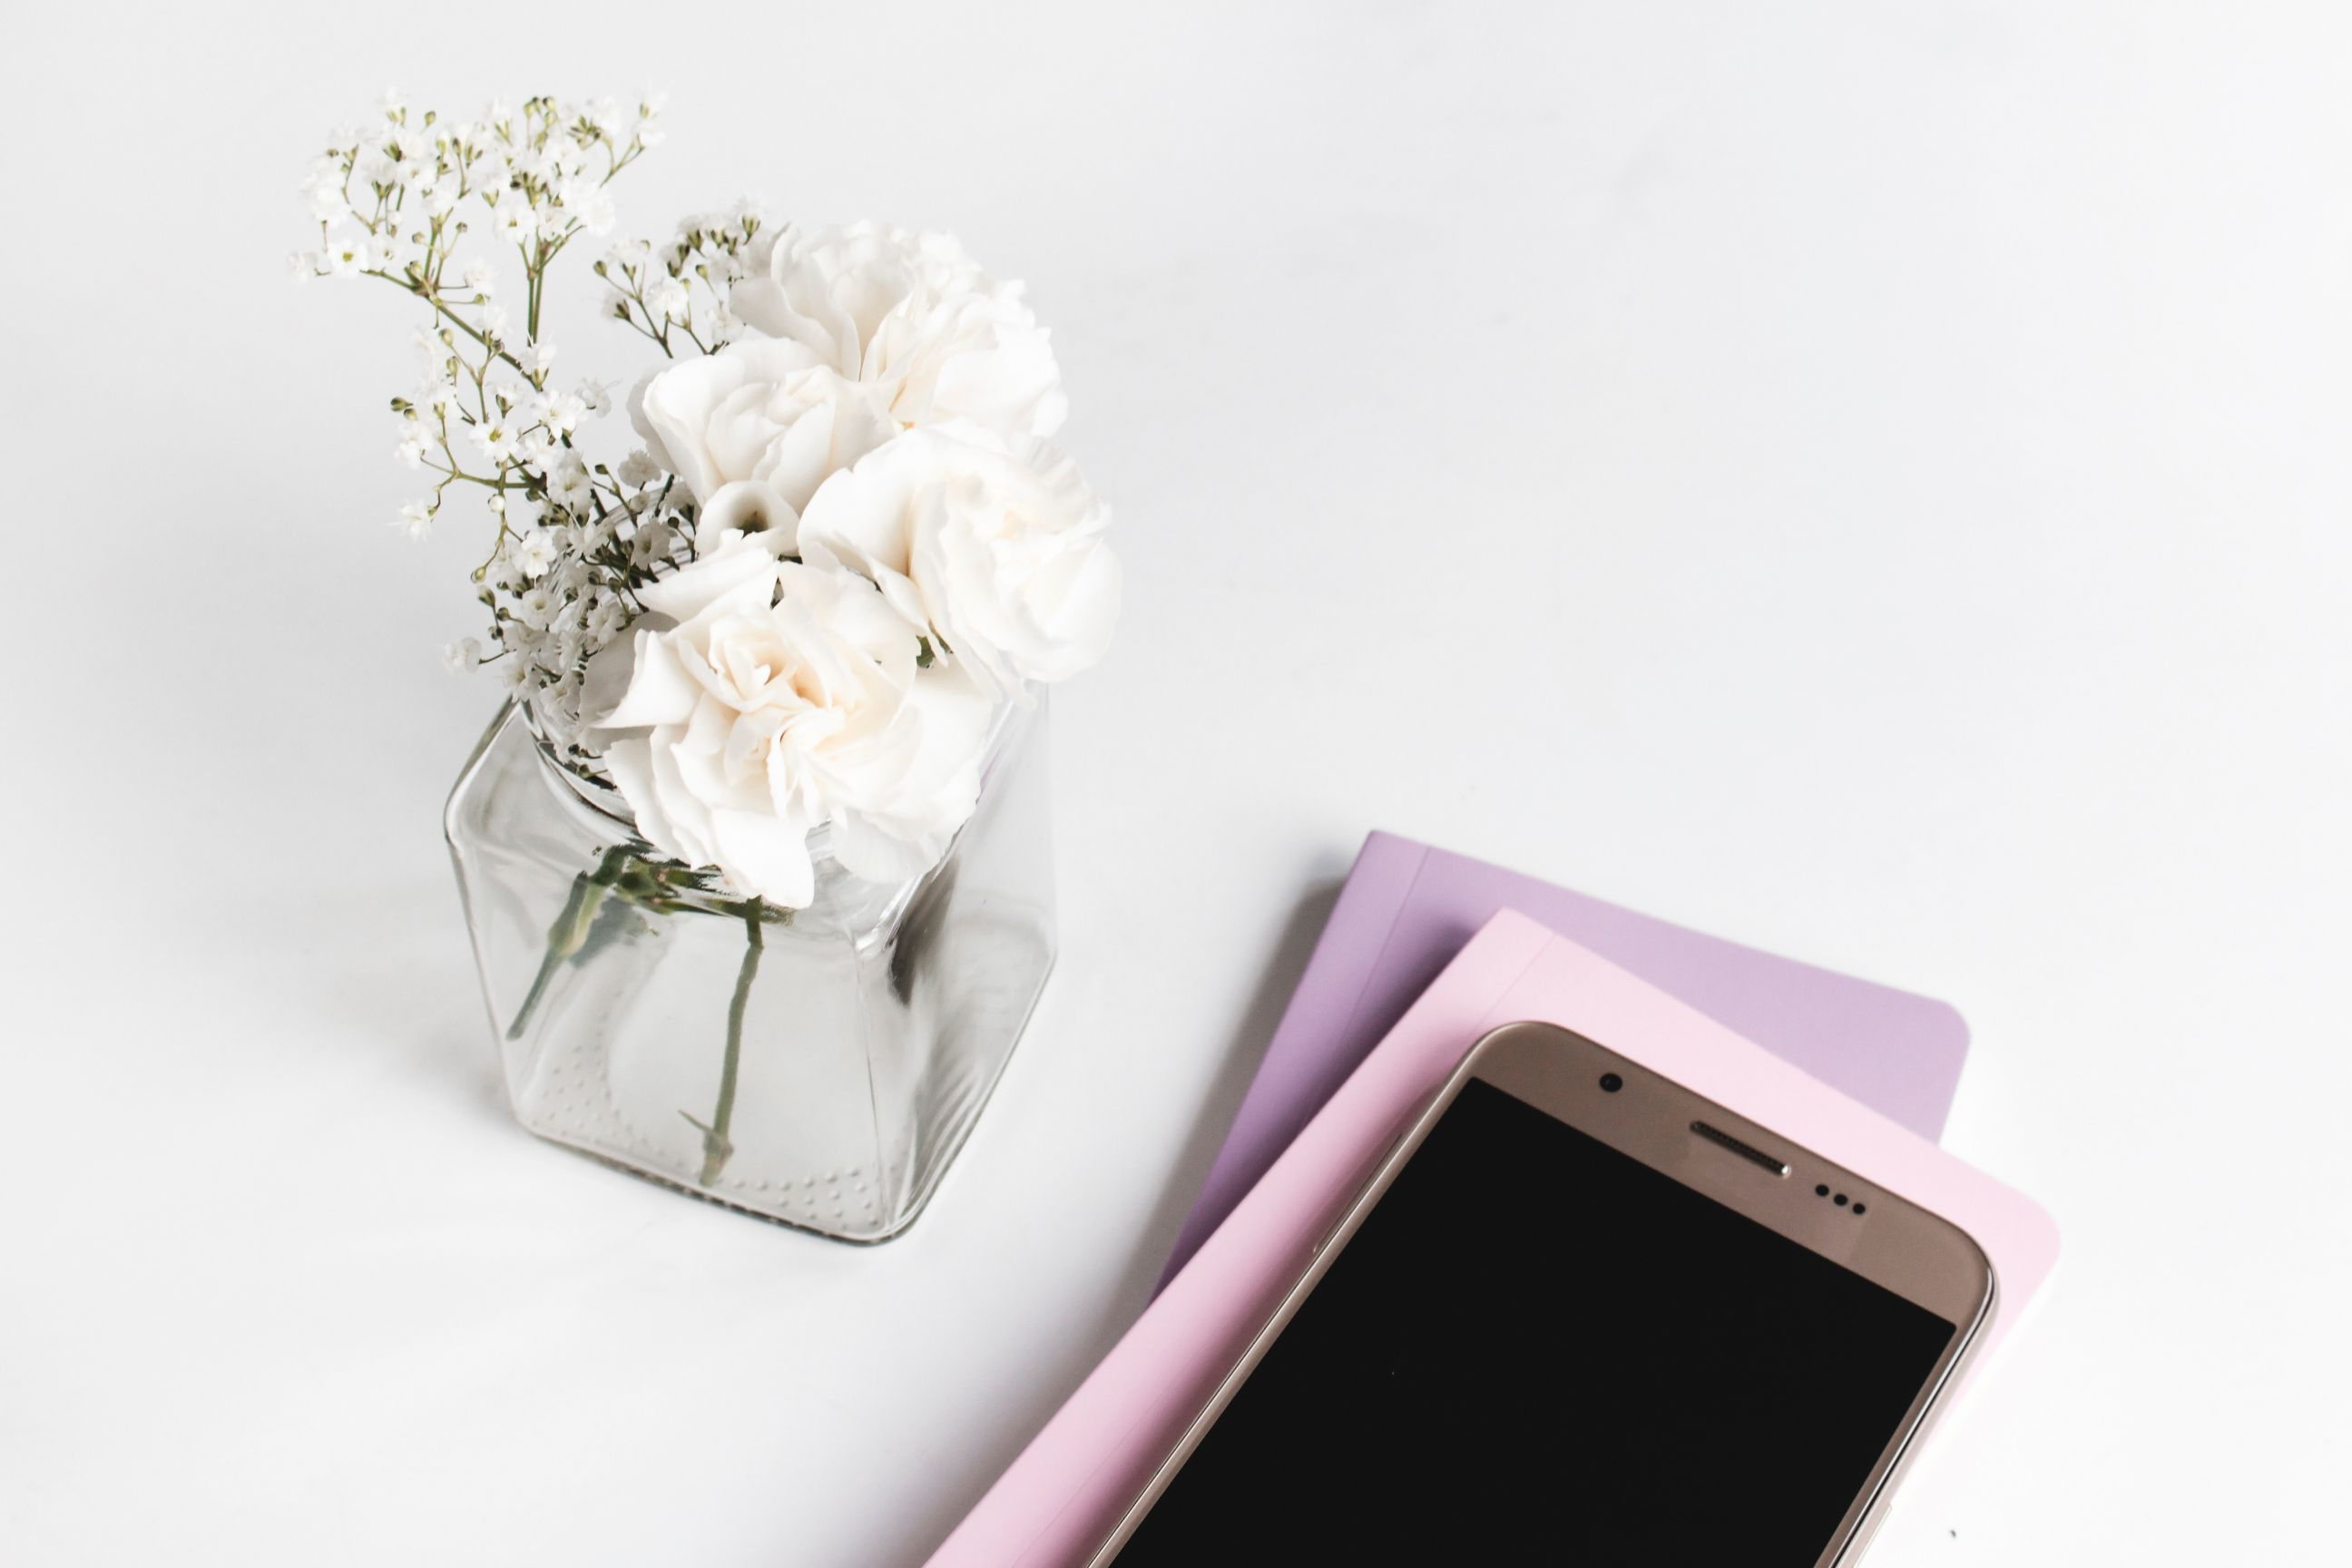 cell phone and flowers on home office desk